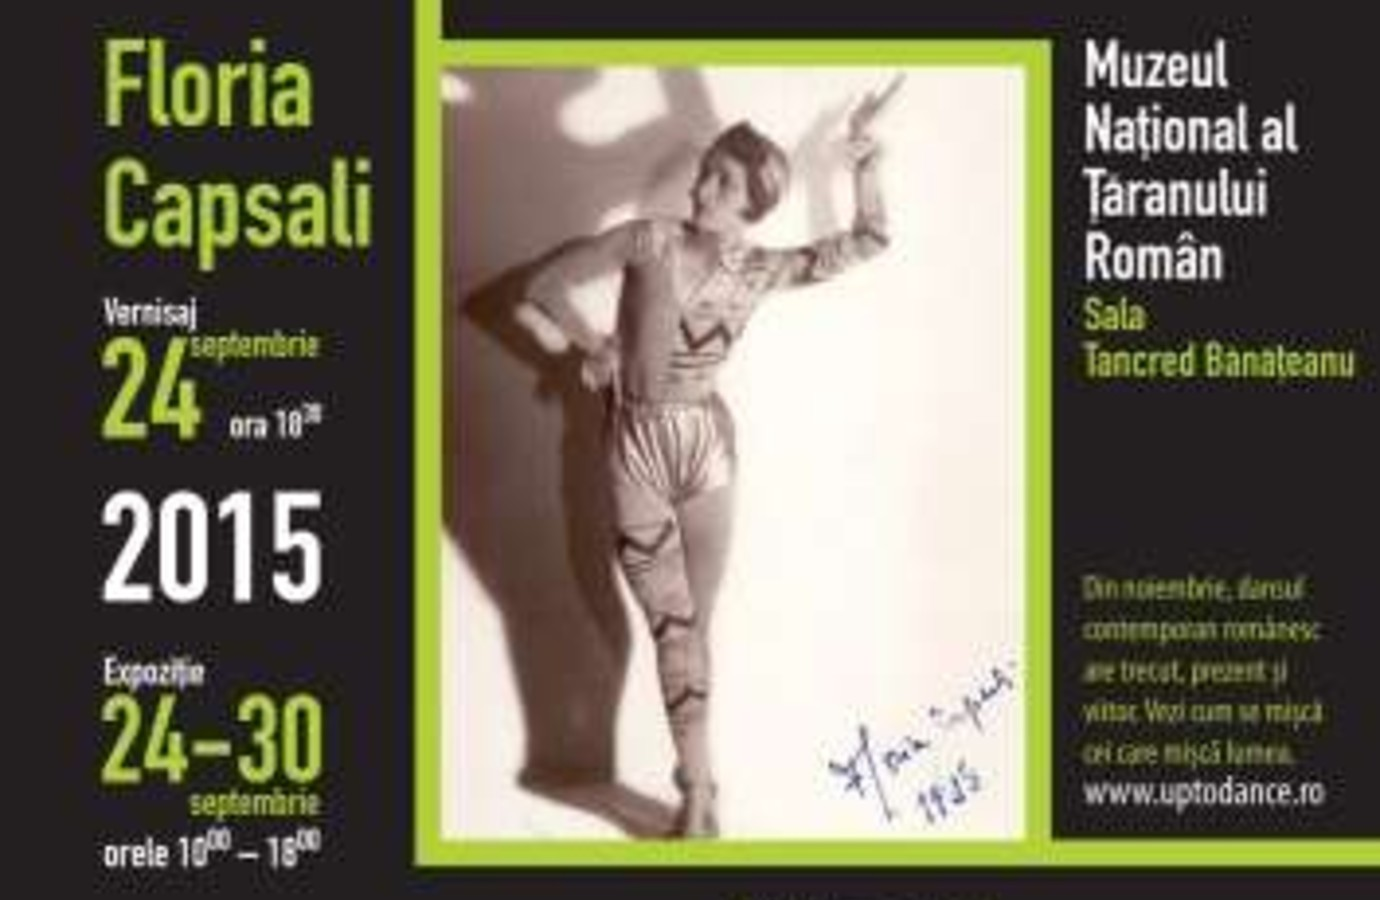 Time Dance Connection. Bucharest in Action (1925-2015) - Floria Capsali